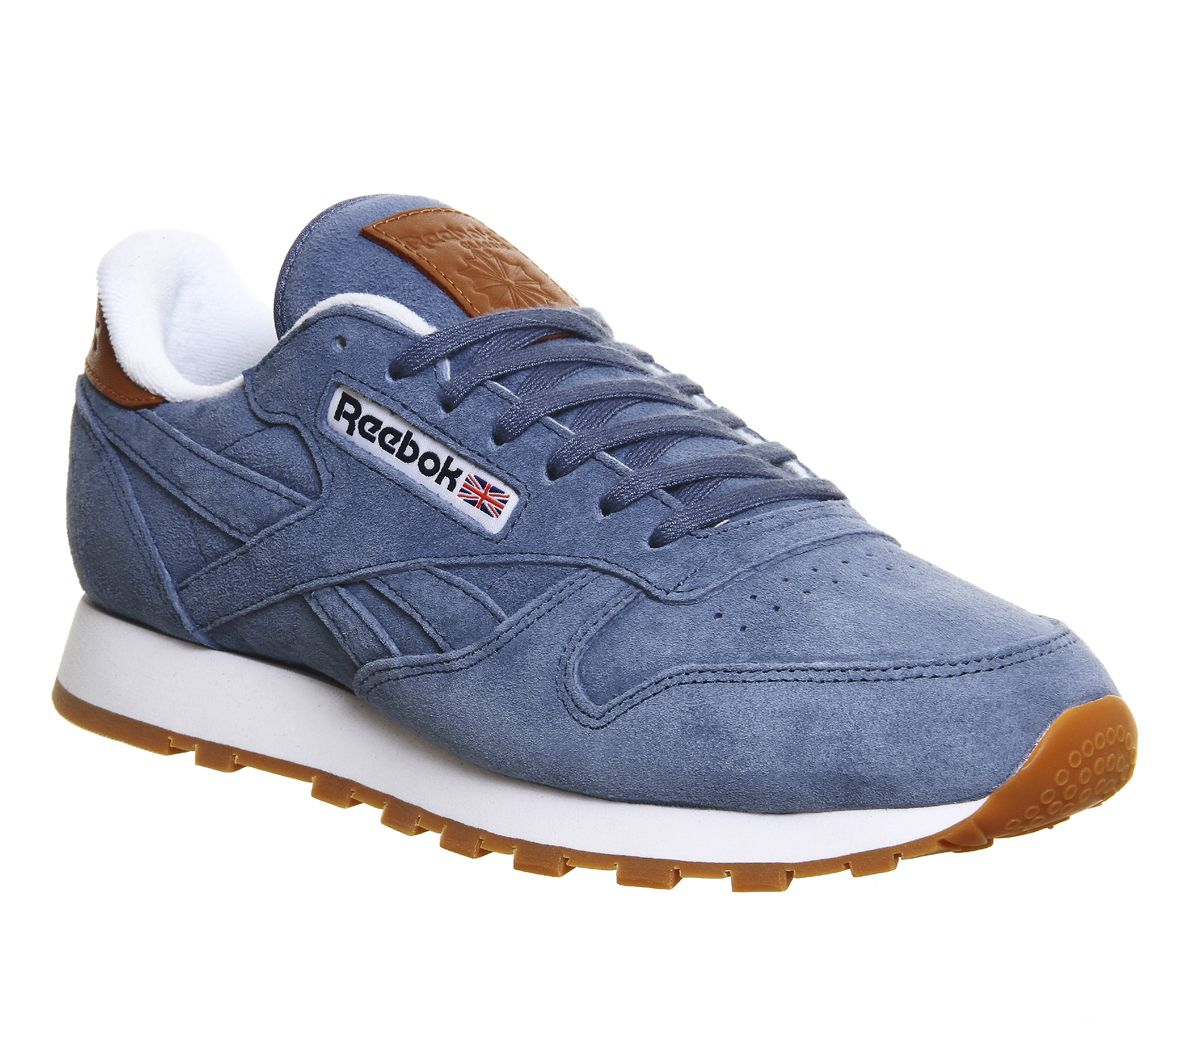 Reebok Cl Leather Blue Slate Collegiate Navy White Exclusive